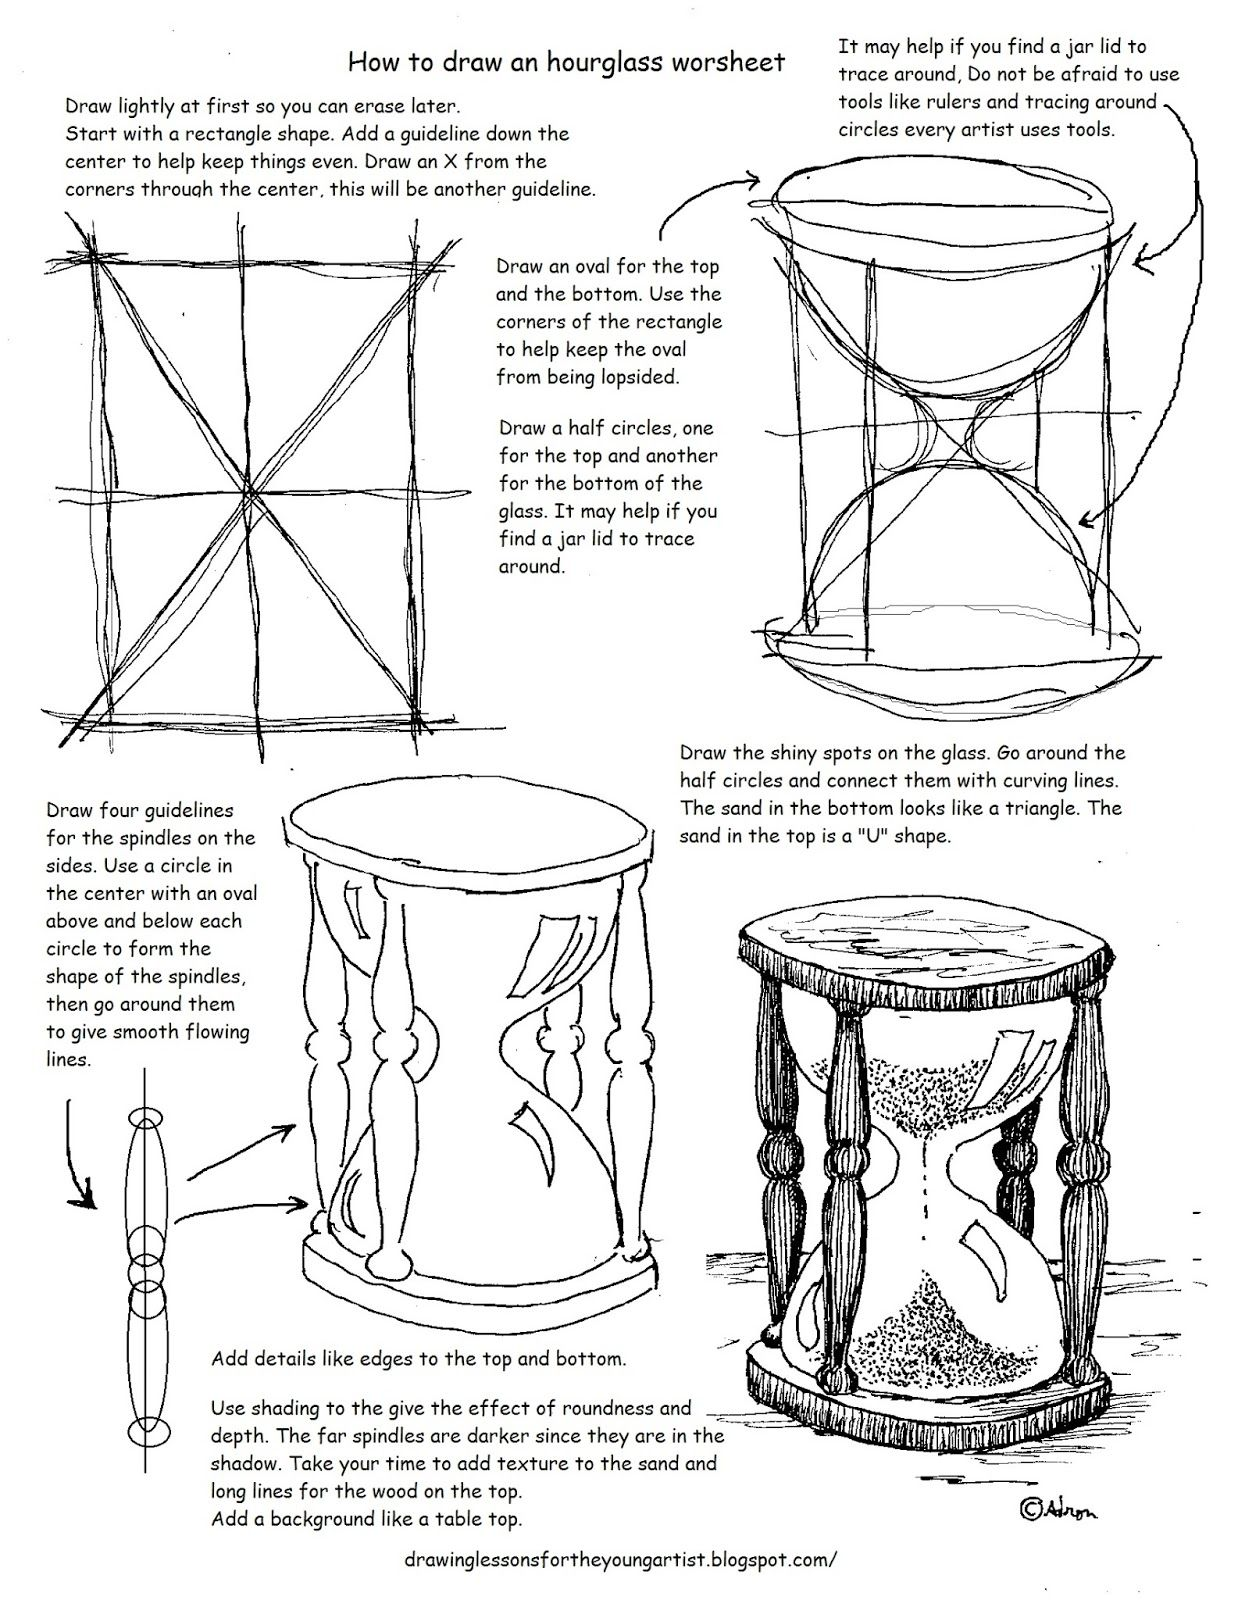 Printable How To Draw An Hourglass Worksheet And Lesson